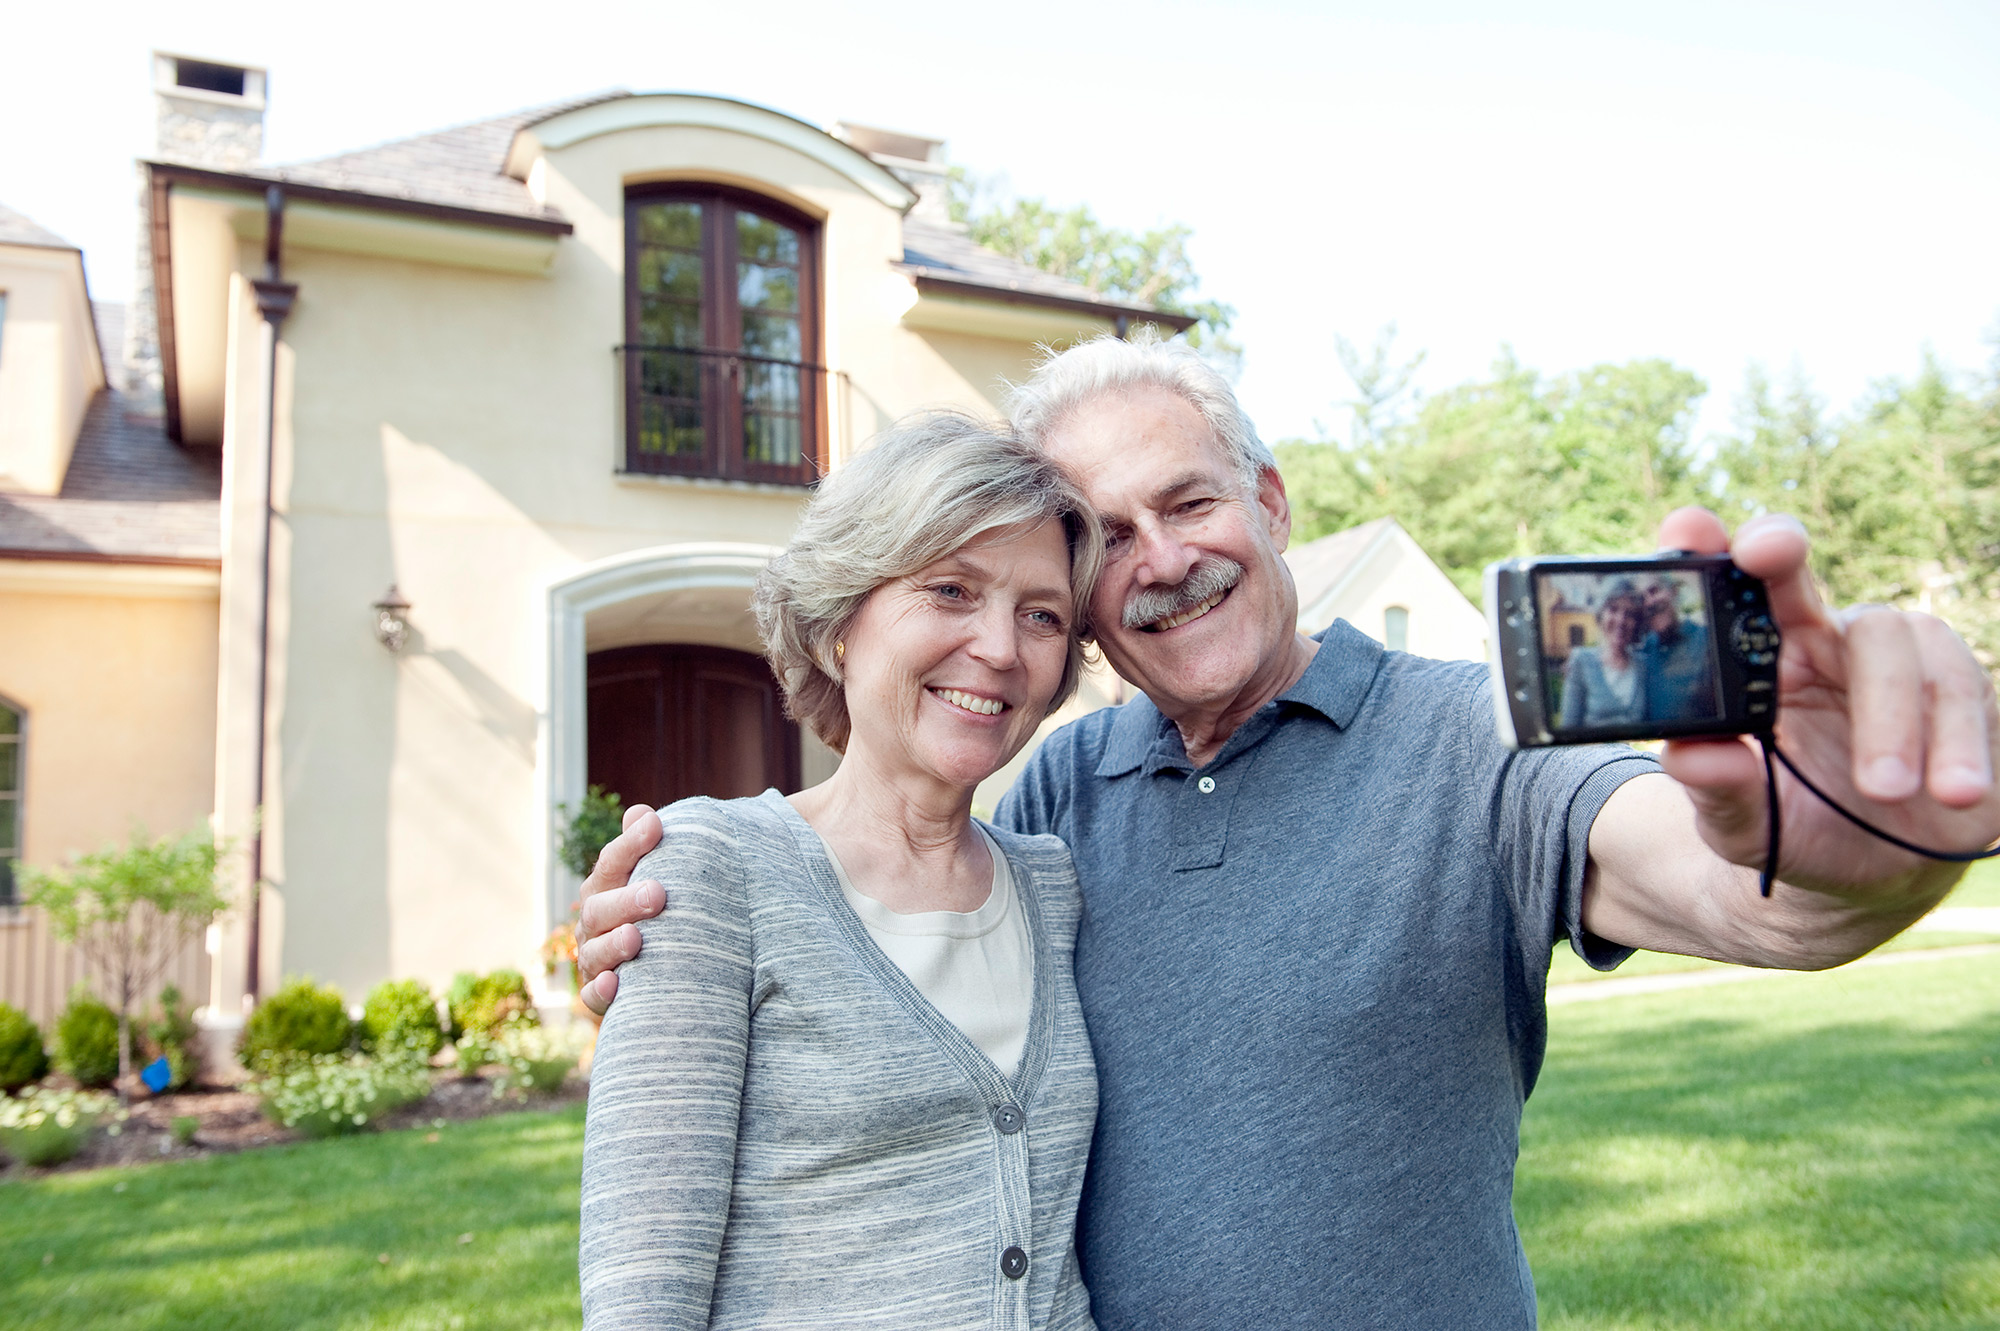 Baby Boomer Selfie Austin Texas Real Estate Retirement